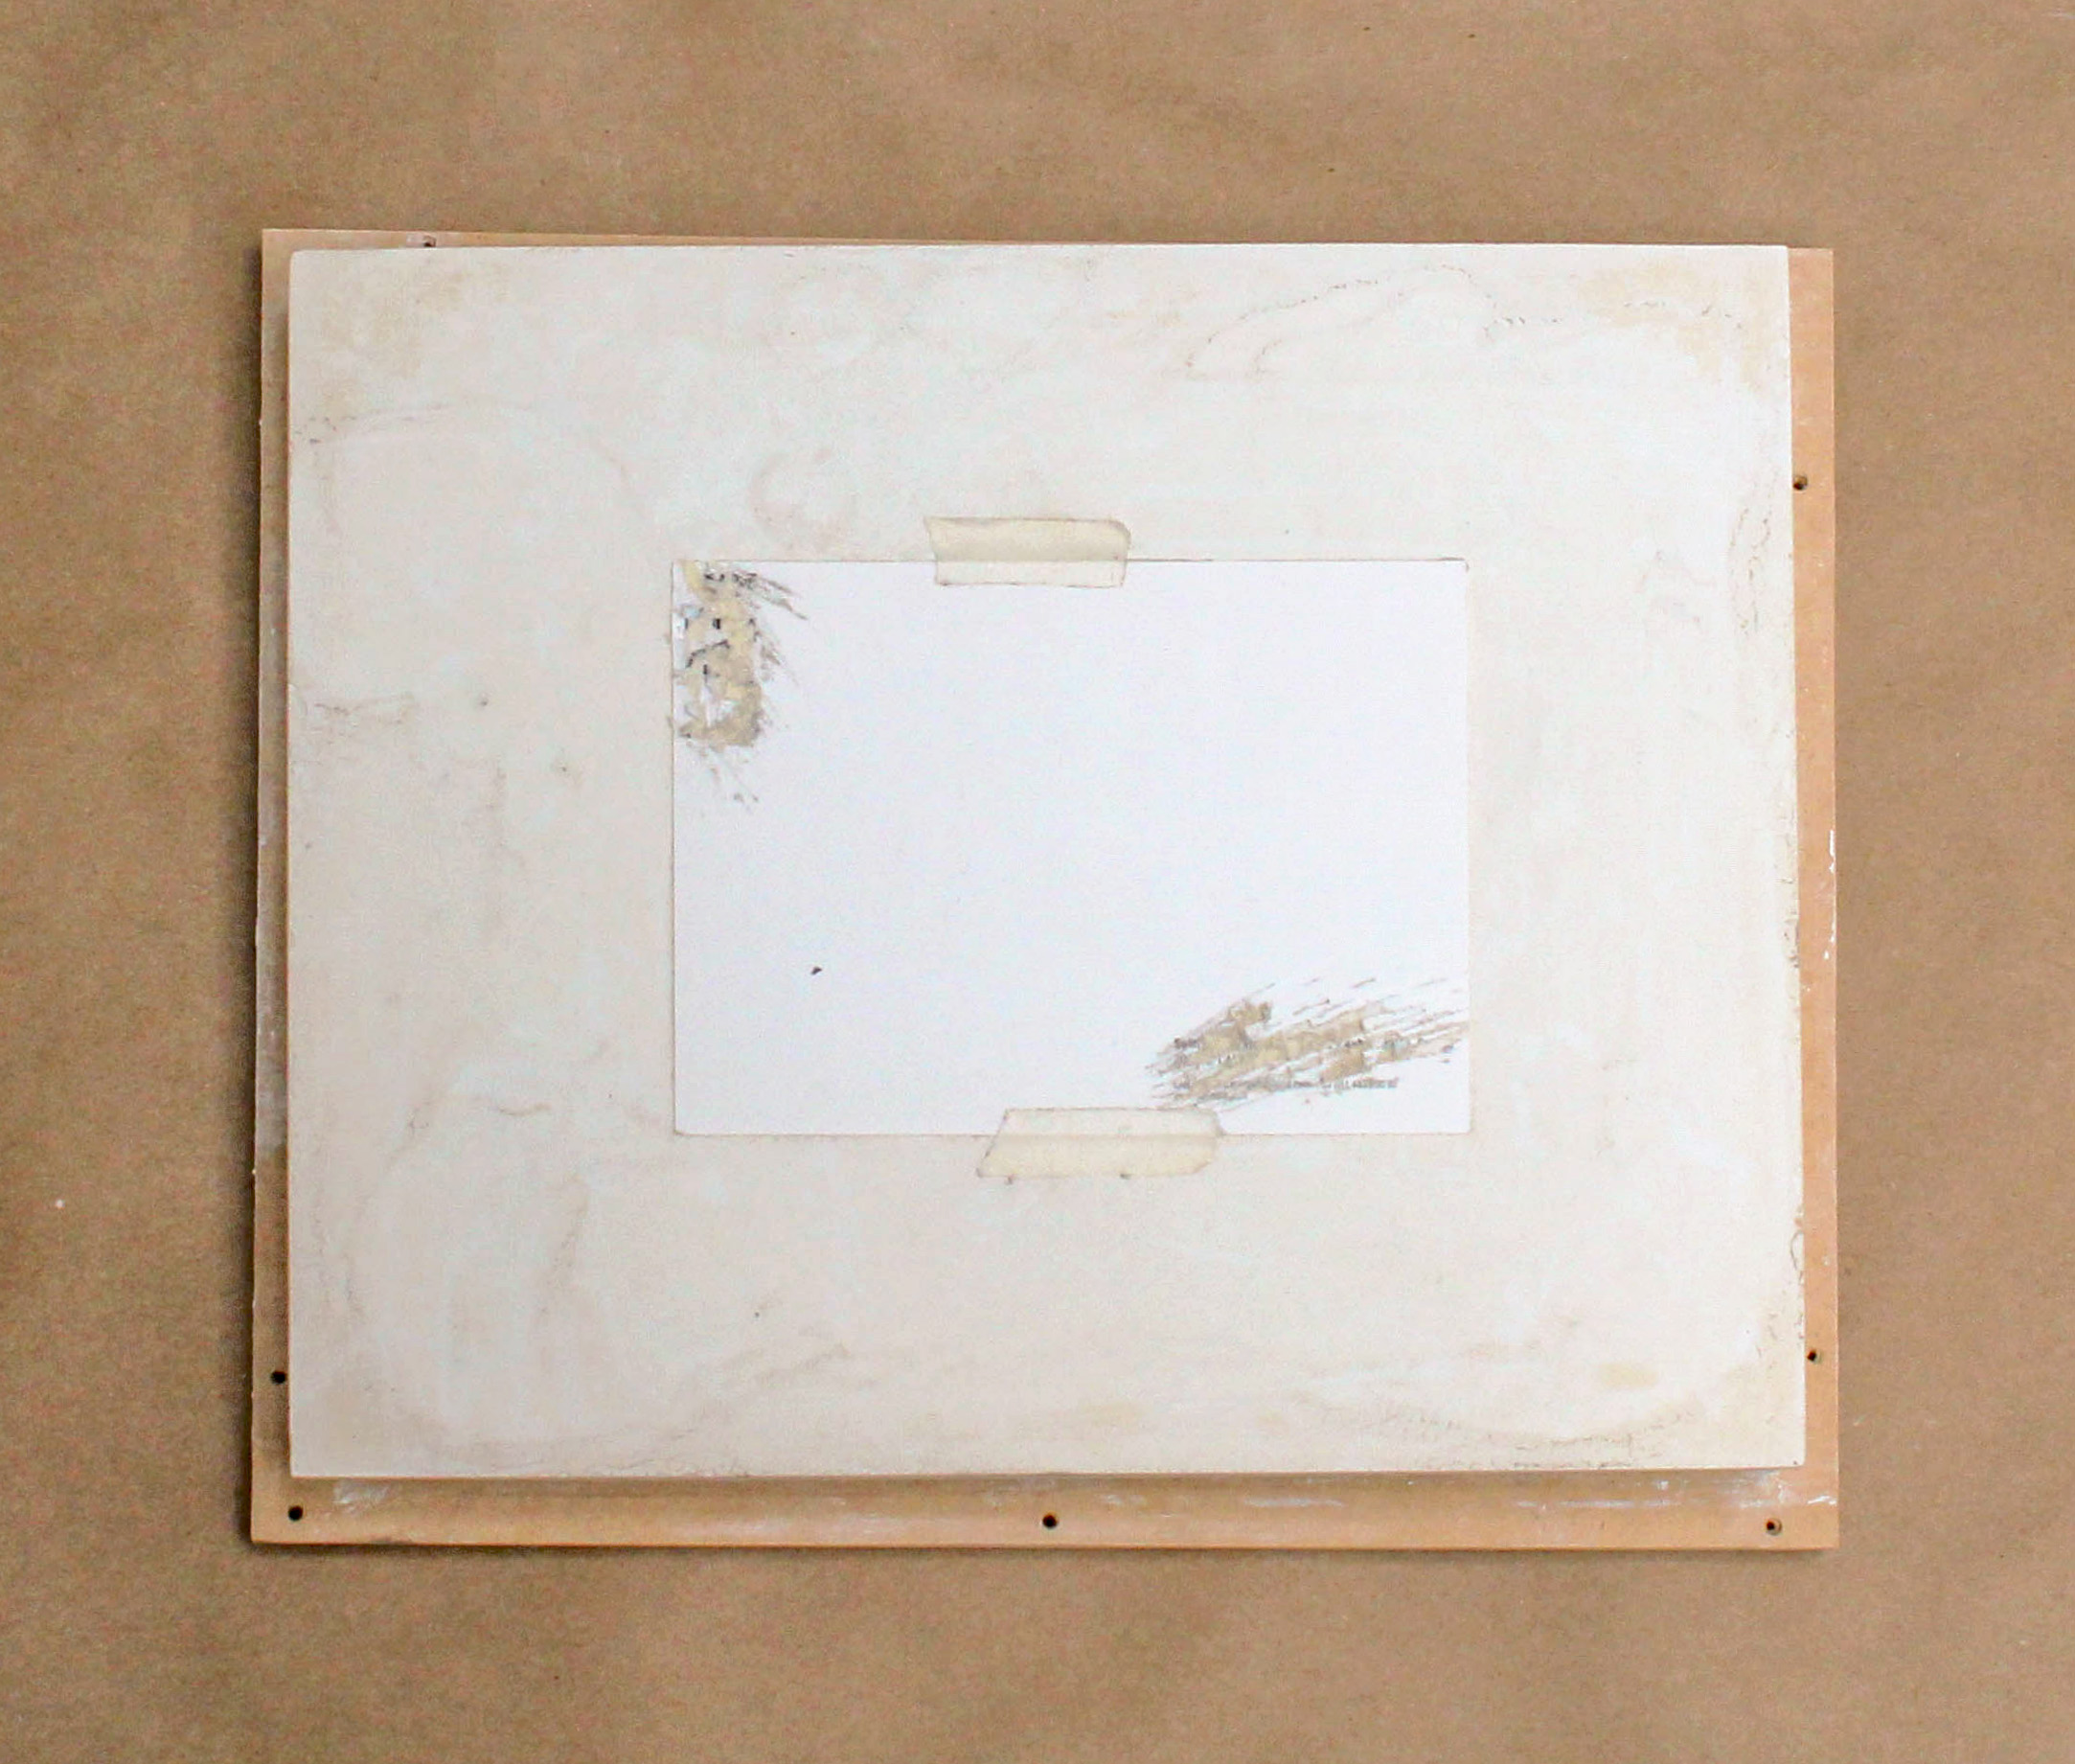 Study for the Structure of the Presentation of a Place , 2016, Plaster, postcard, masking tape, mdf panel, craft paper, 10x12 in., Detail